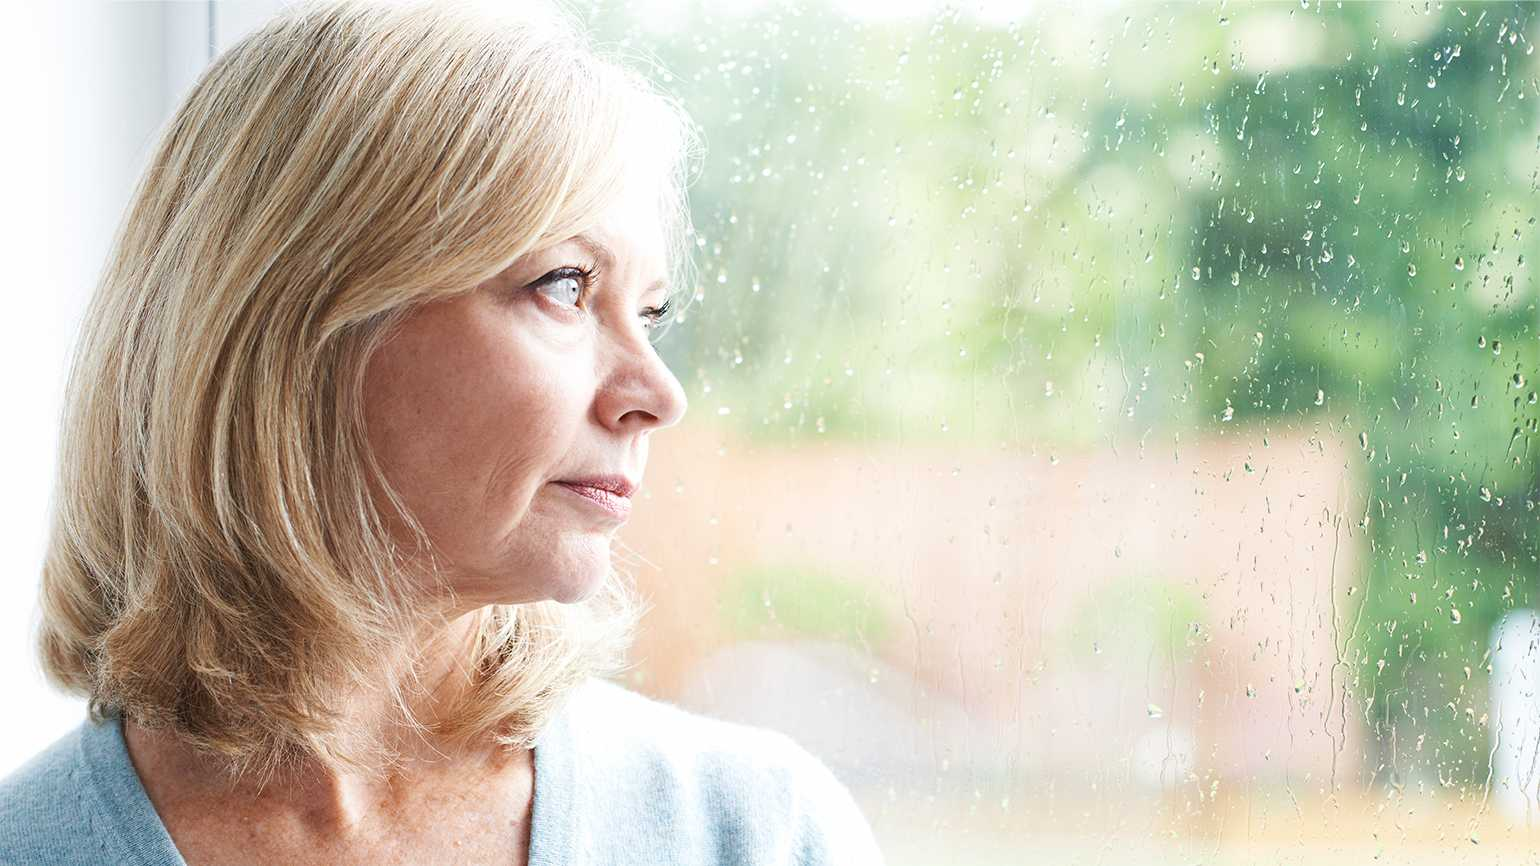 A depressed senior woman gazes out the window